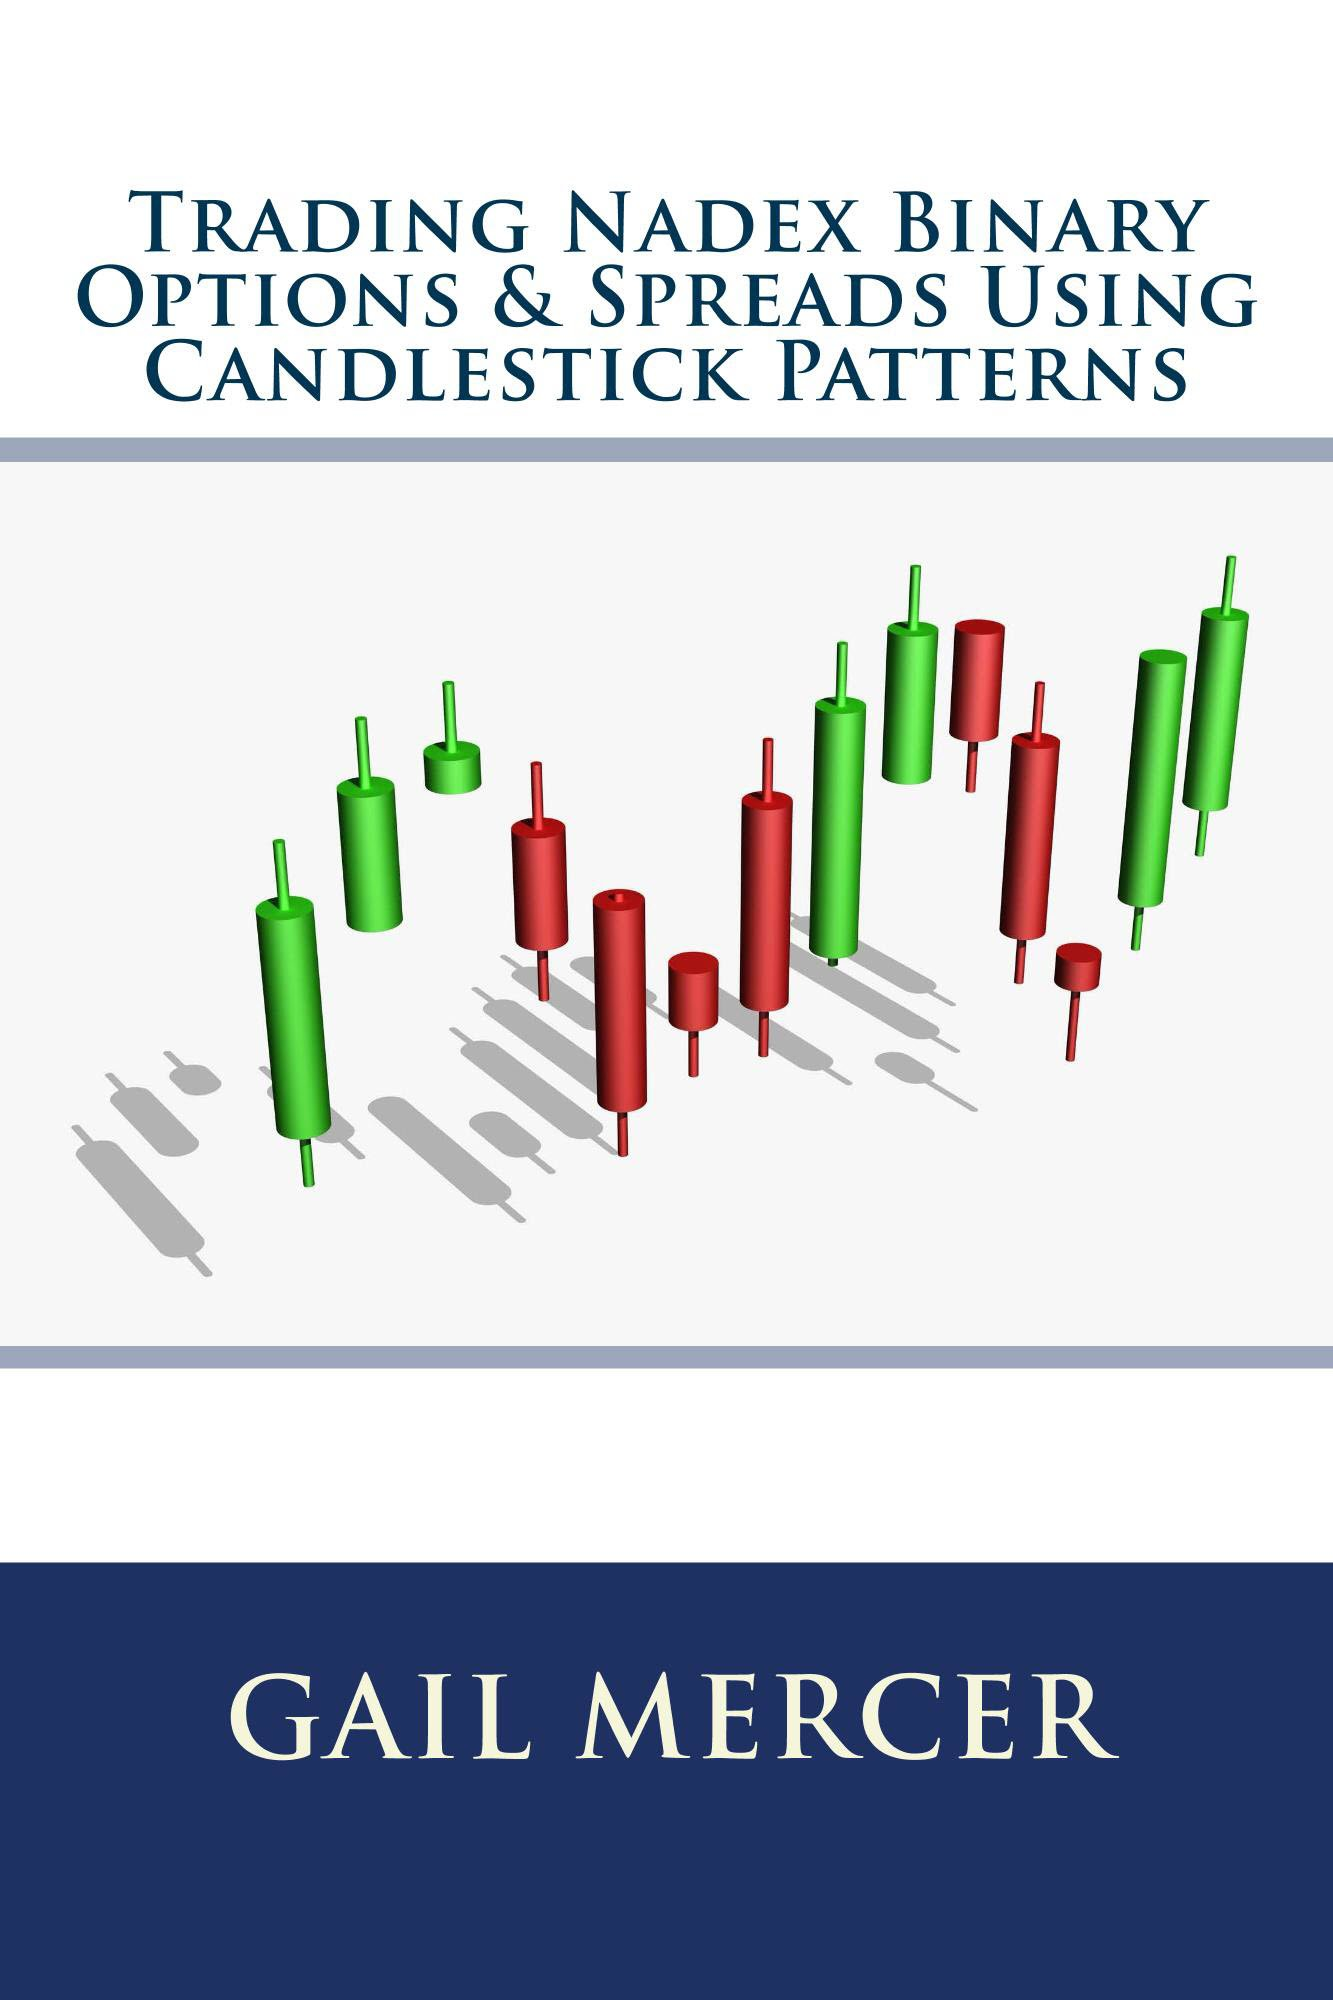 Trading Nadex Binary Options & Spreads Using Candlestick Patterns